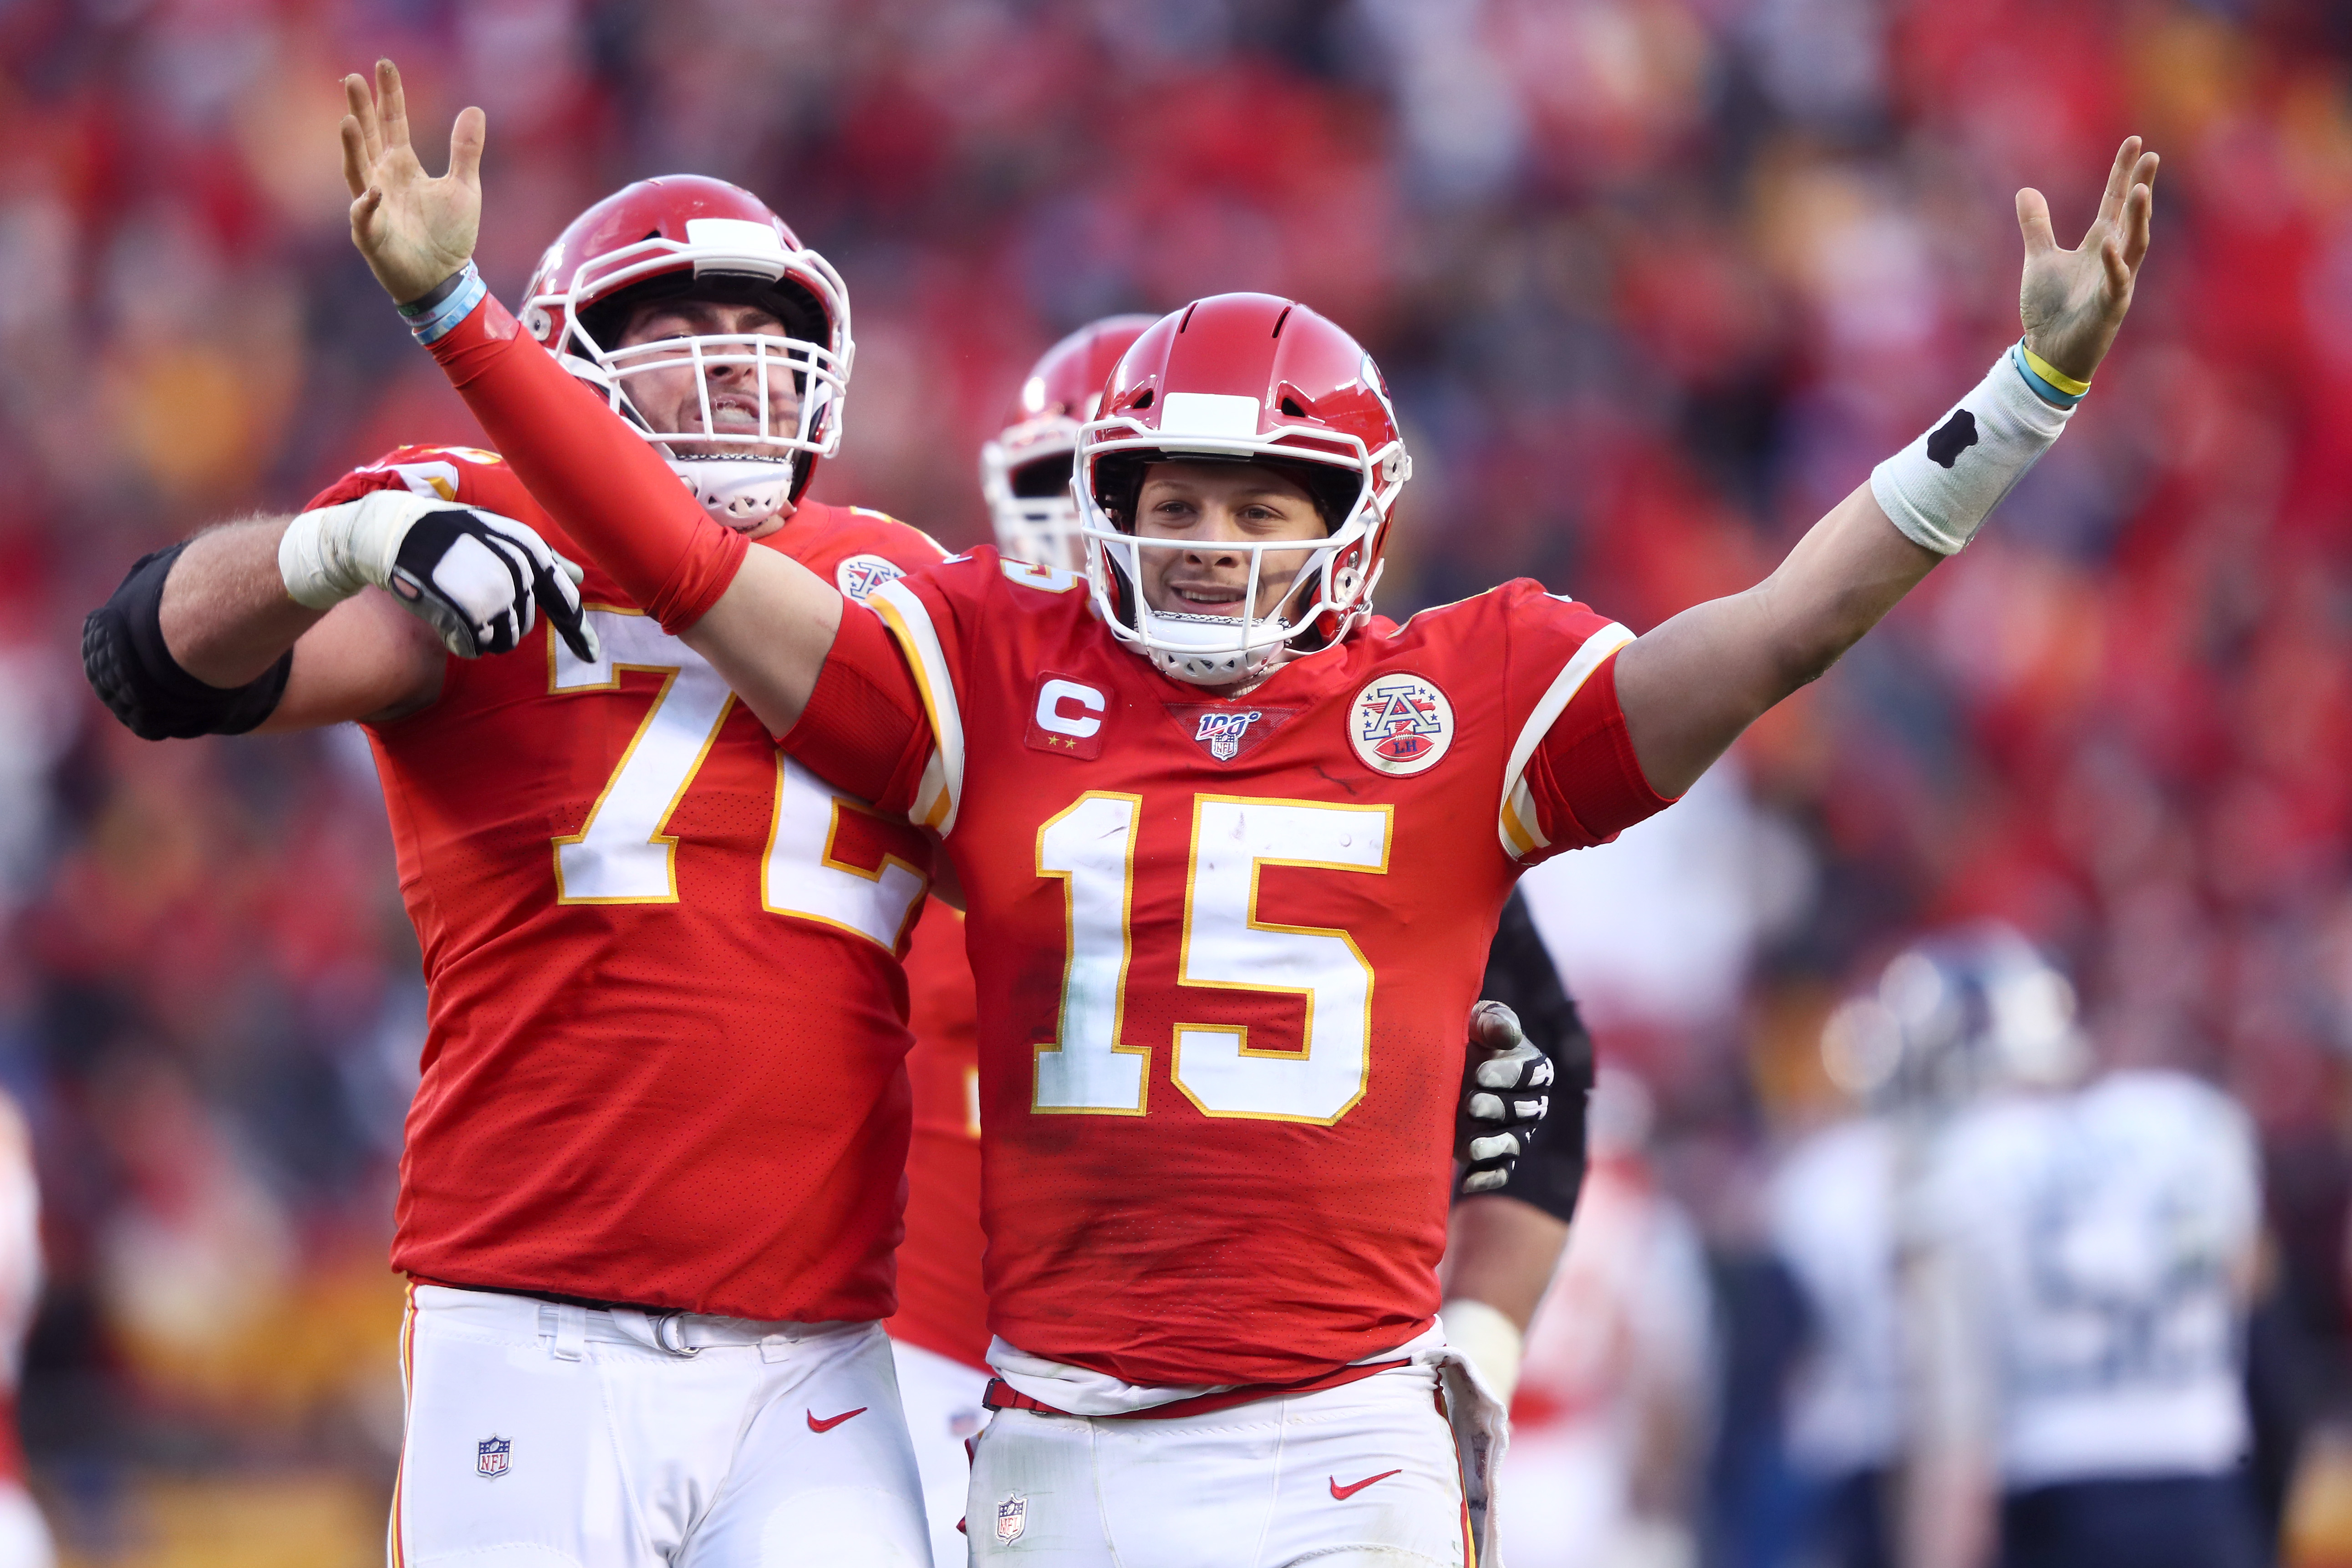 Patrick Mahomes of the Kansas City Chiefs reacts with teammate Eric Fisher after a fourth quarter touchdown pass against the Tennessee Titans in the AFC Championship Game at Arrowhead Stadium on January 19, 2020 in Kansas City, Missouri.